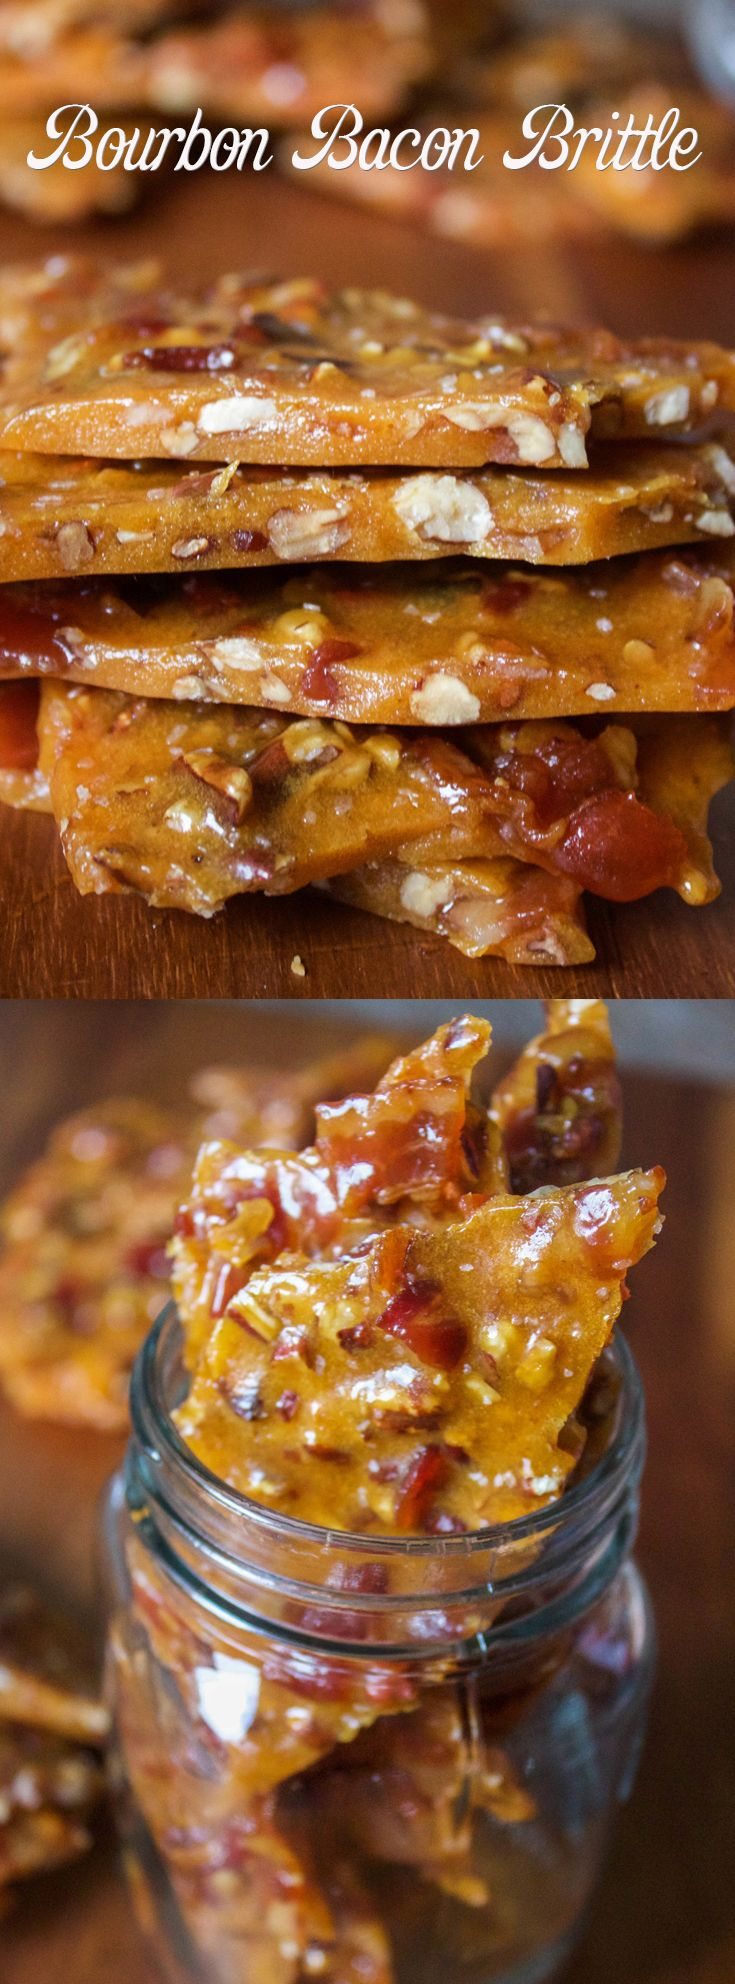 Bourbon Bacon Brittle